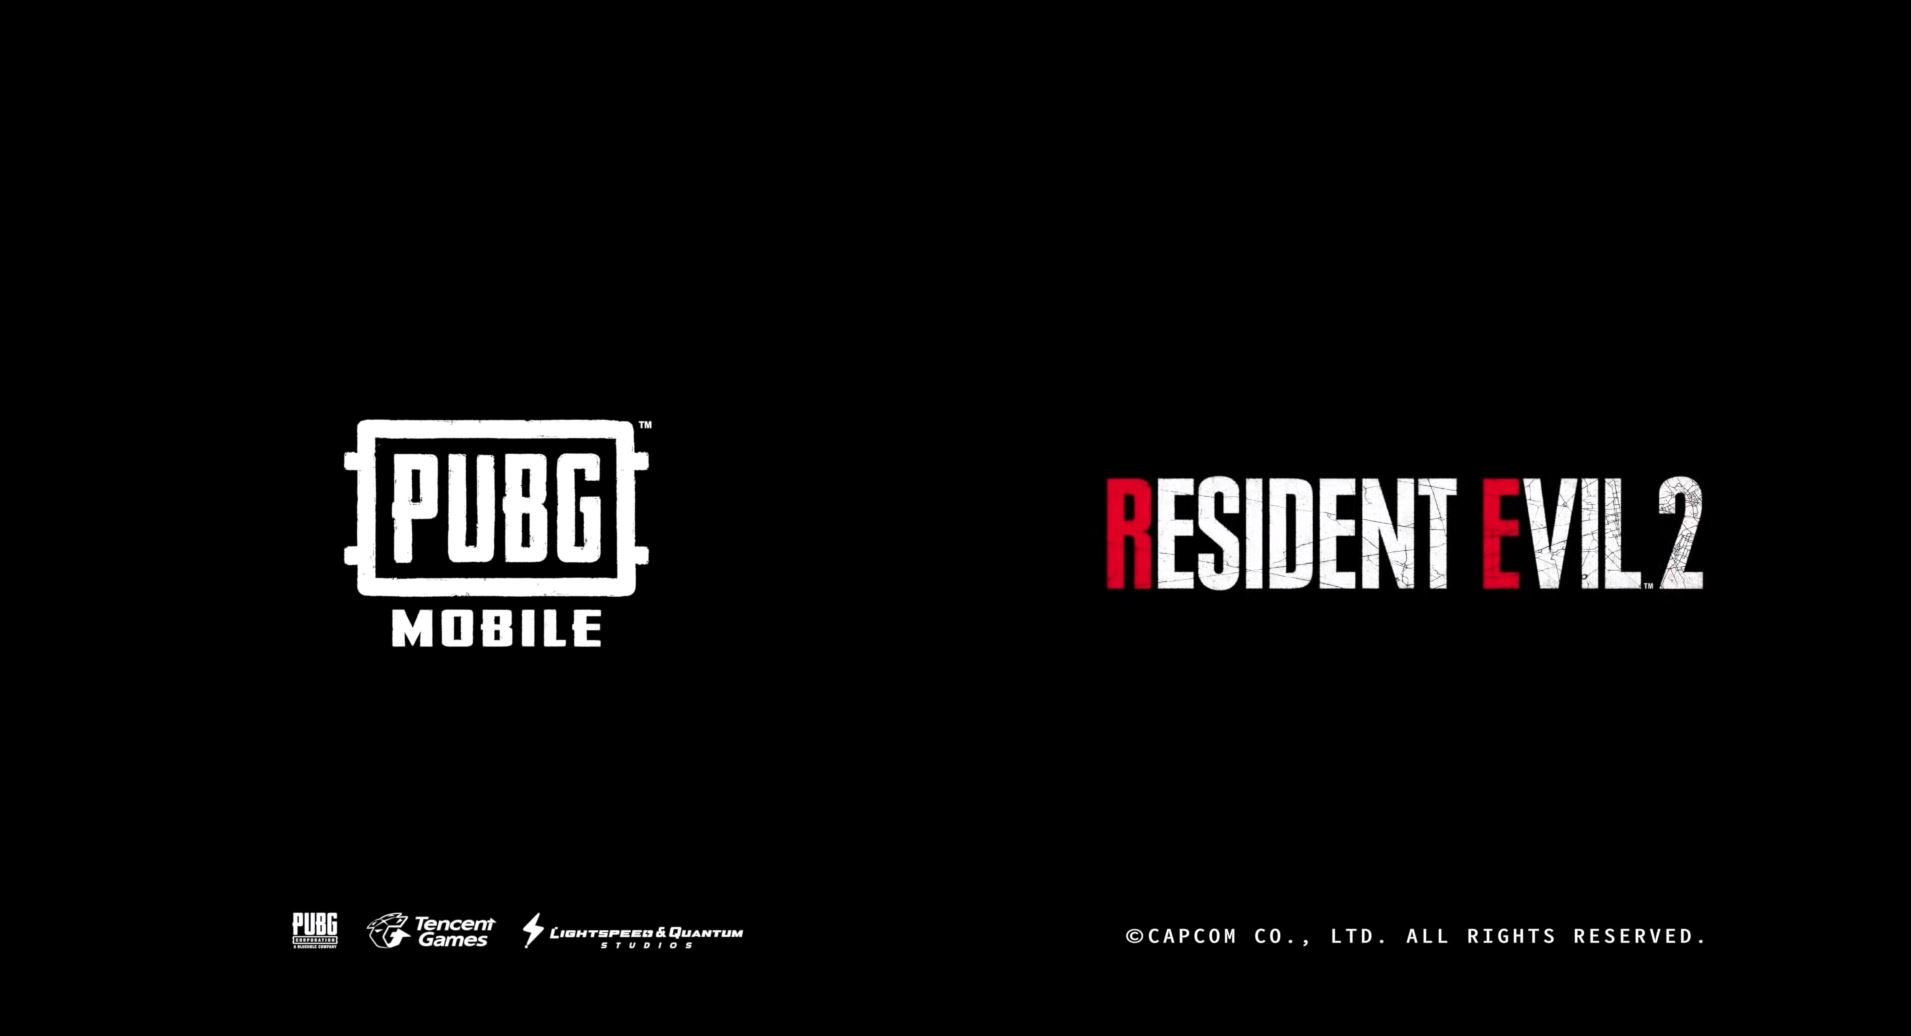 Photo of PUBG Mobile teams up with Resident Evil 2 to bring something new